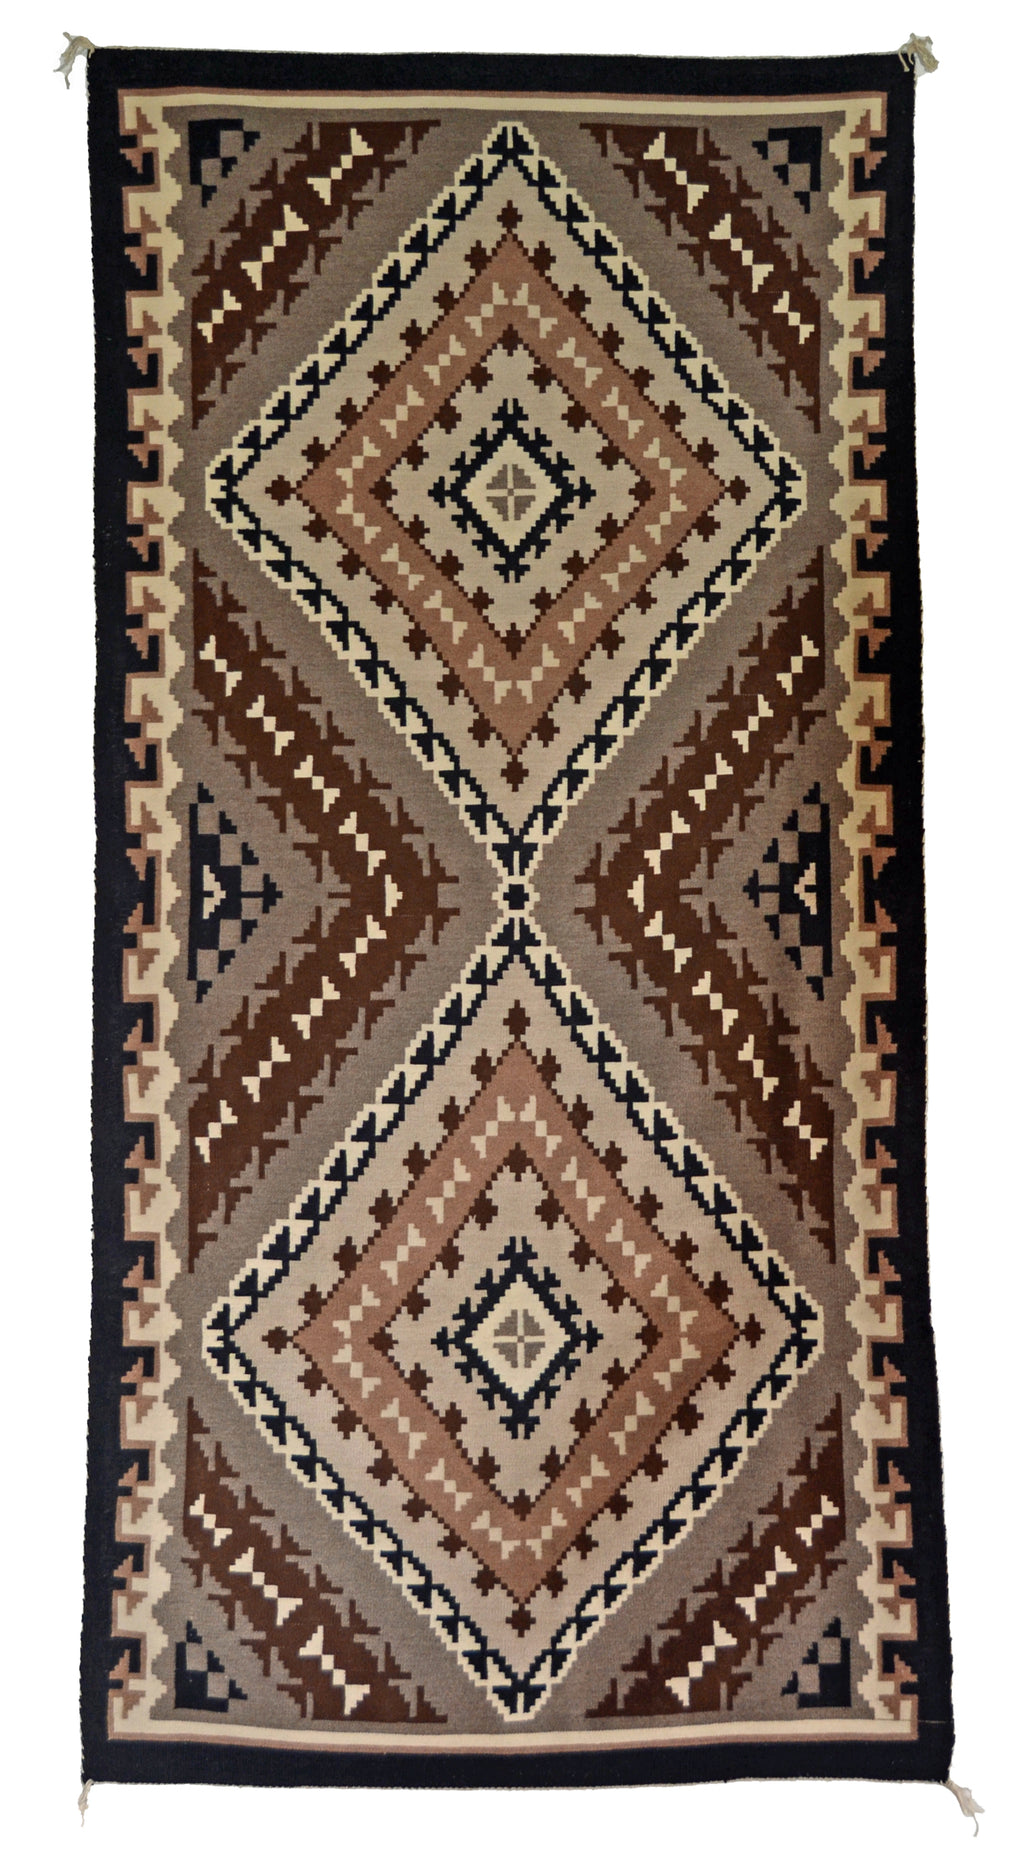 Two Grey Hills Navajo Rug-Contempoary runner